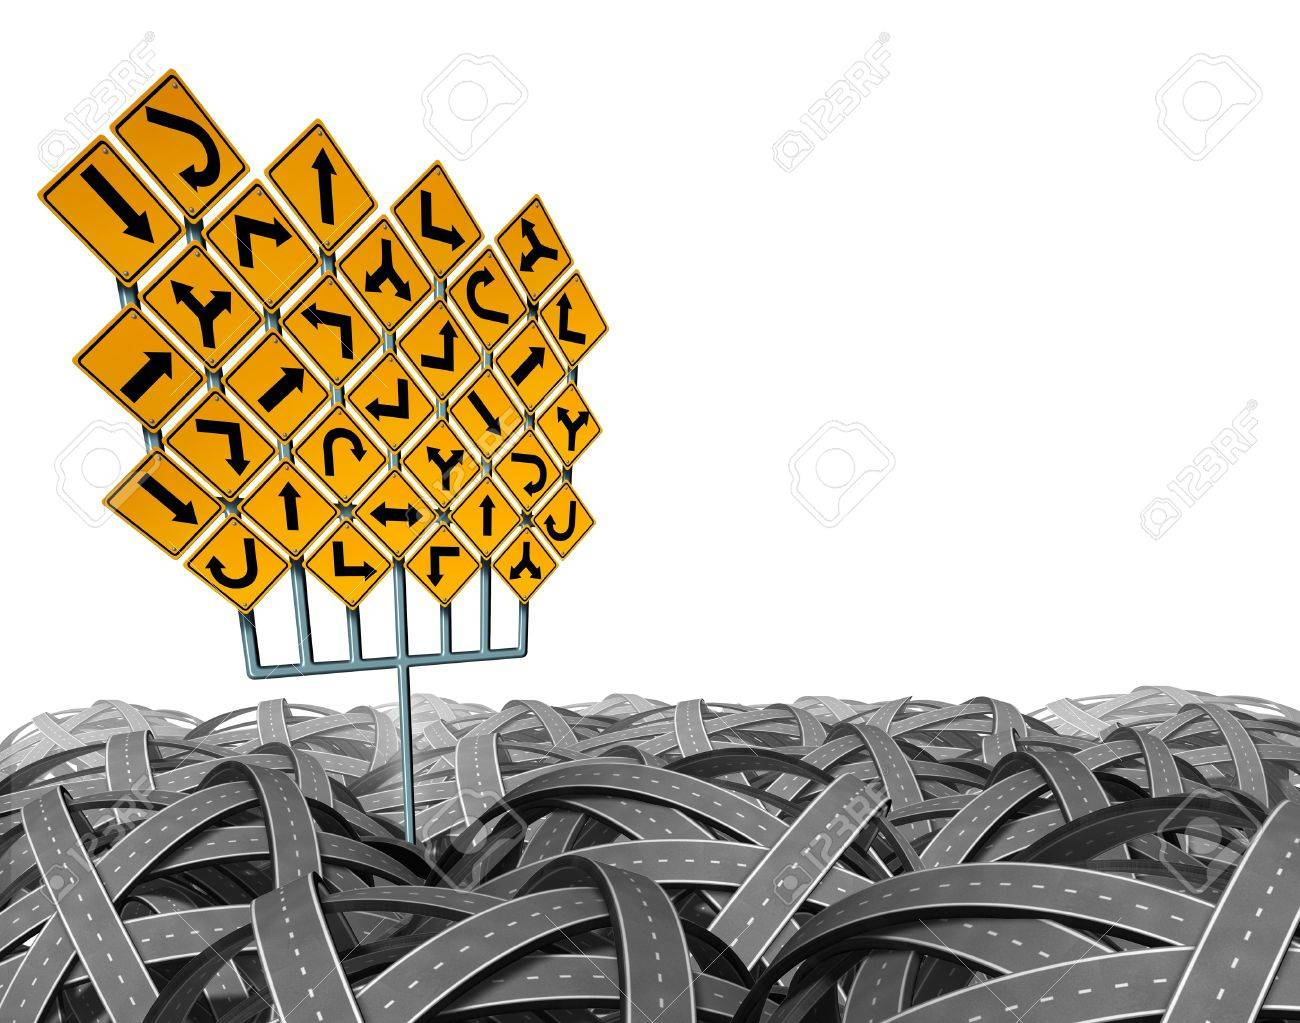 Direction choices choosing the right strategic path for business and life with a large group of yellow traffic signs with confused arrows tangled roads and highways in a chaotic path Stock Photo - 16244896